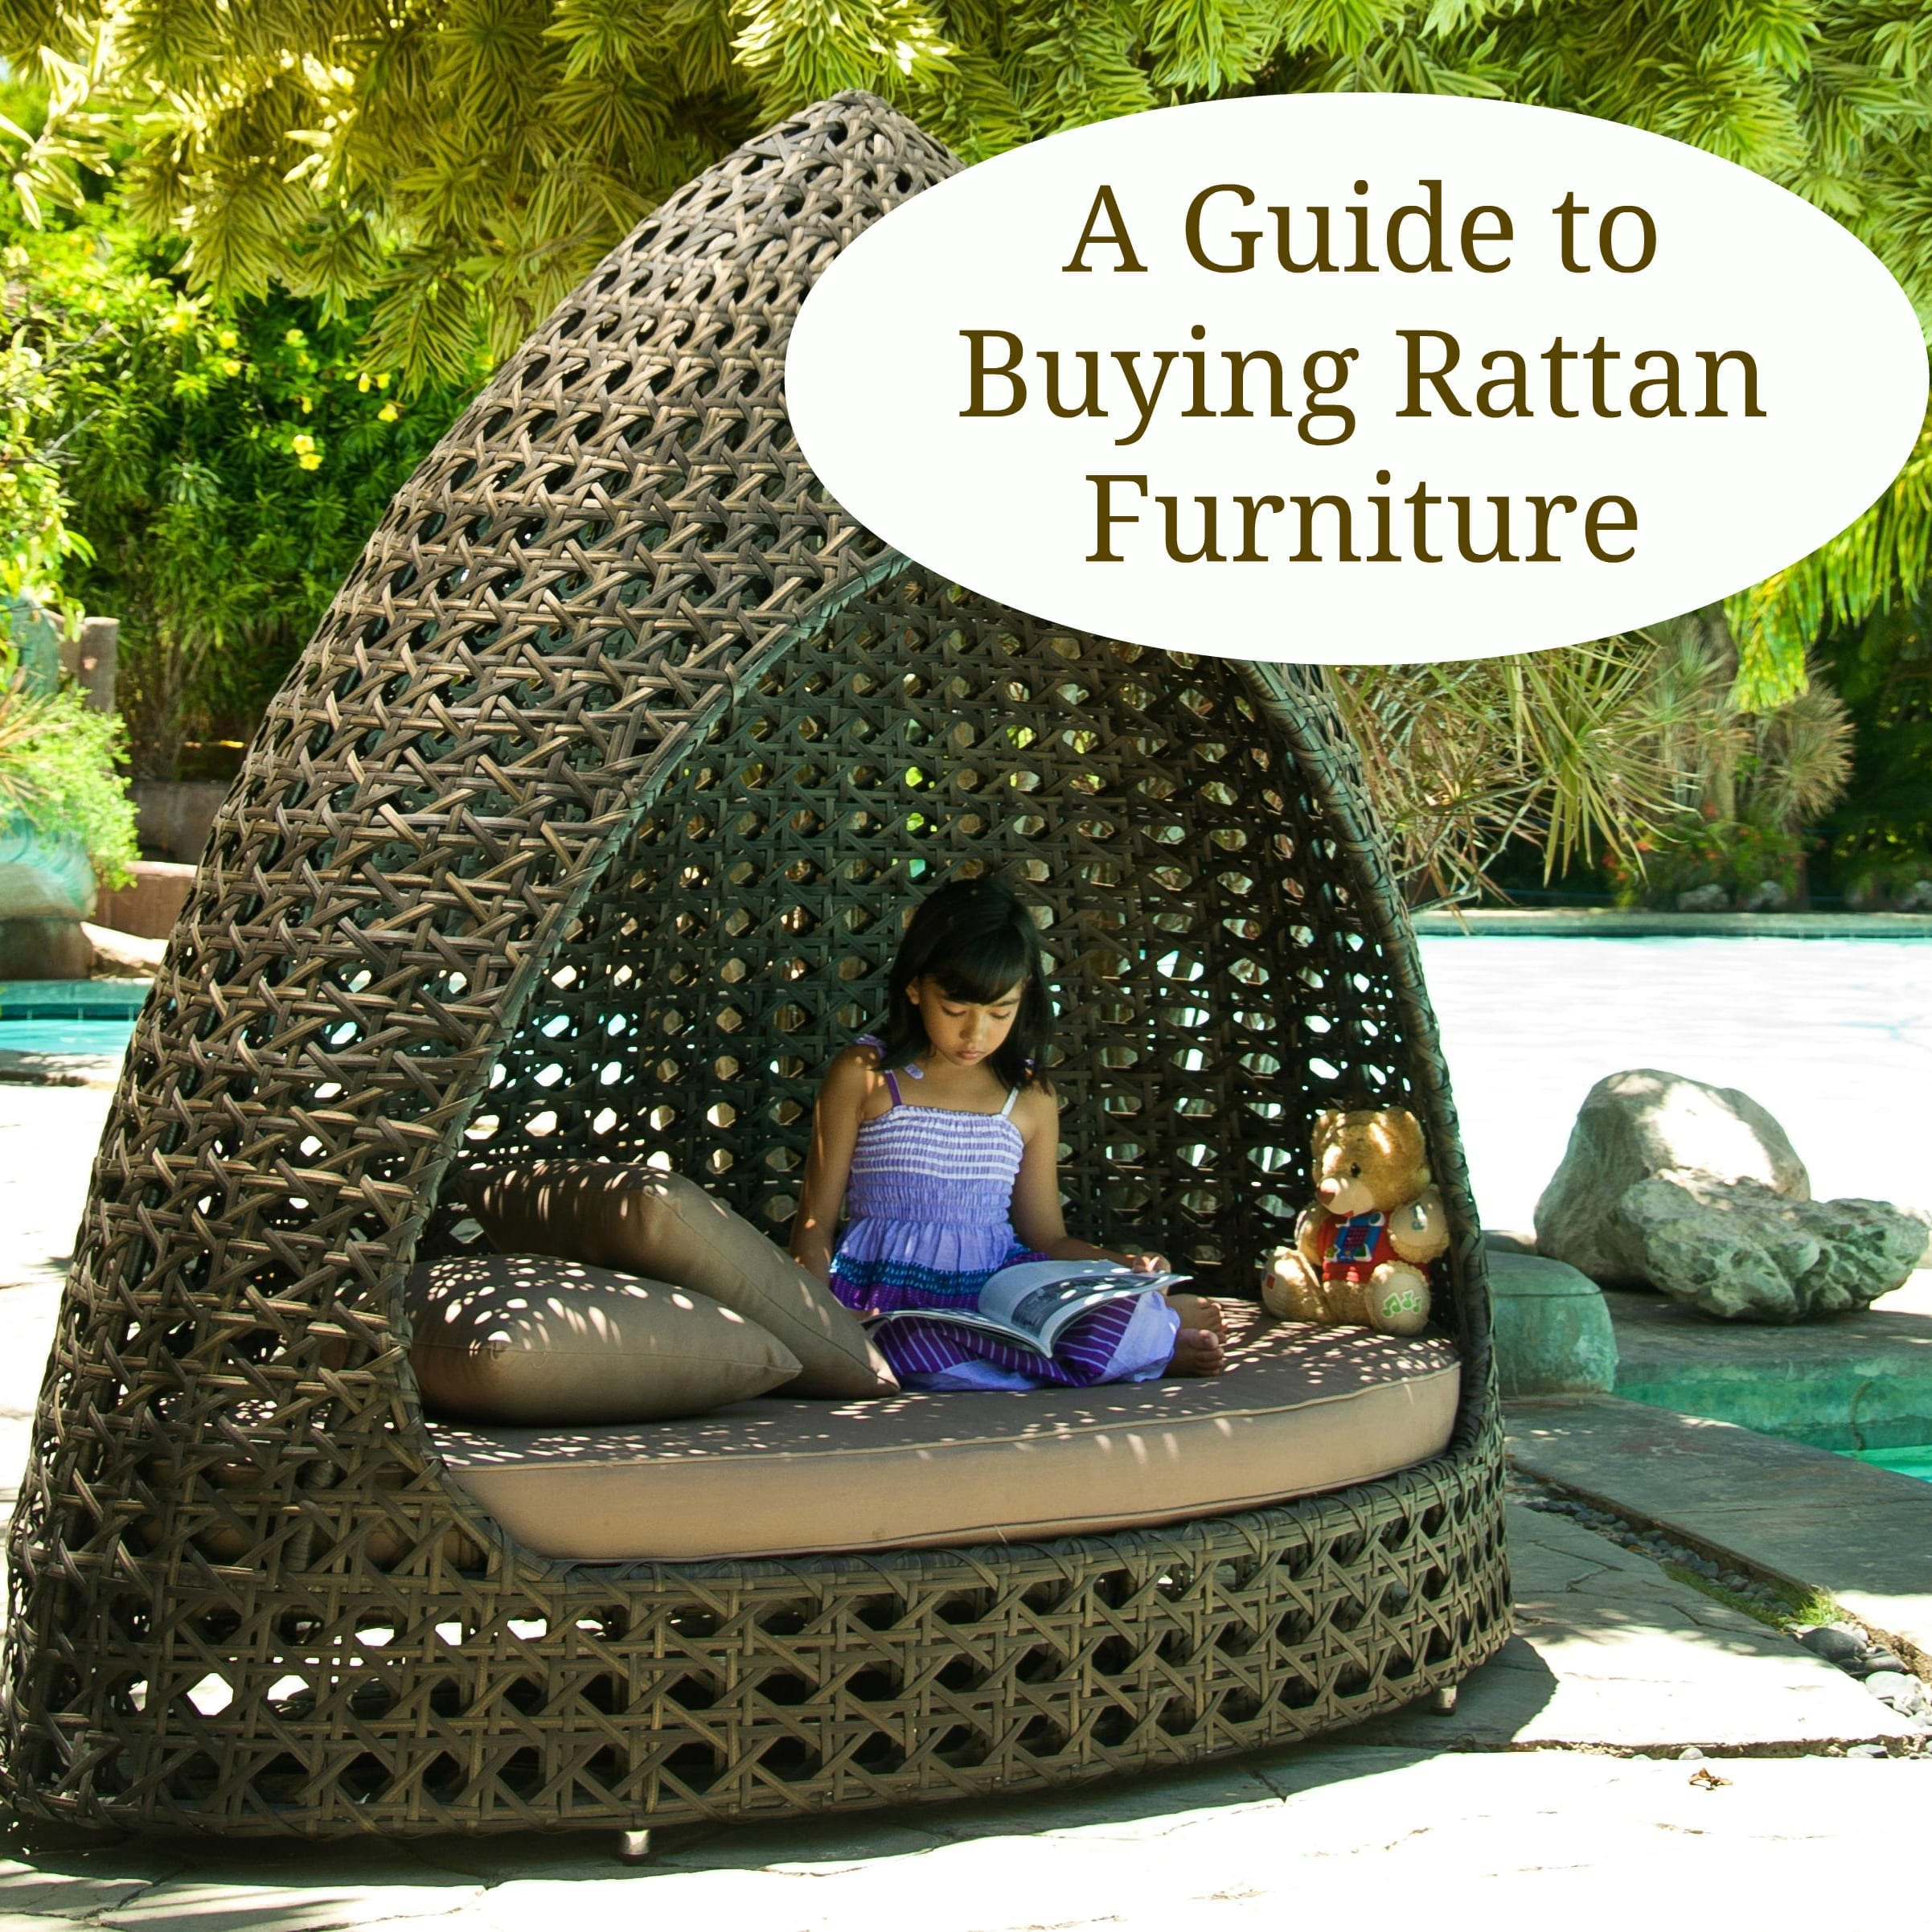 Advice And Tips On What To Look Out For When Buying Rattan Furniture